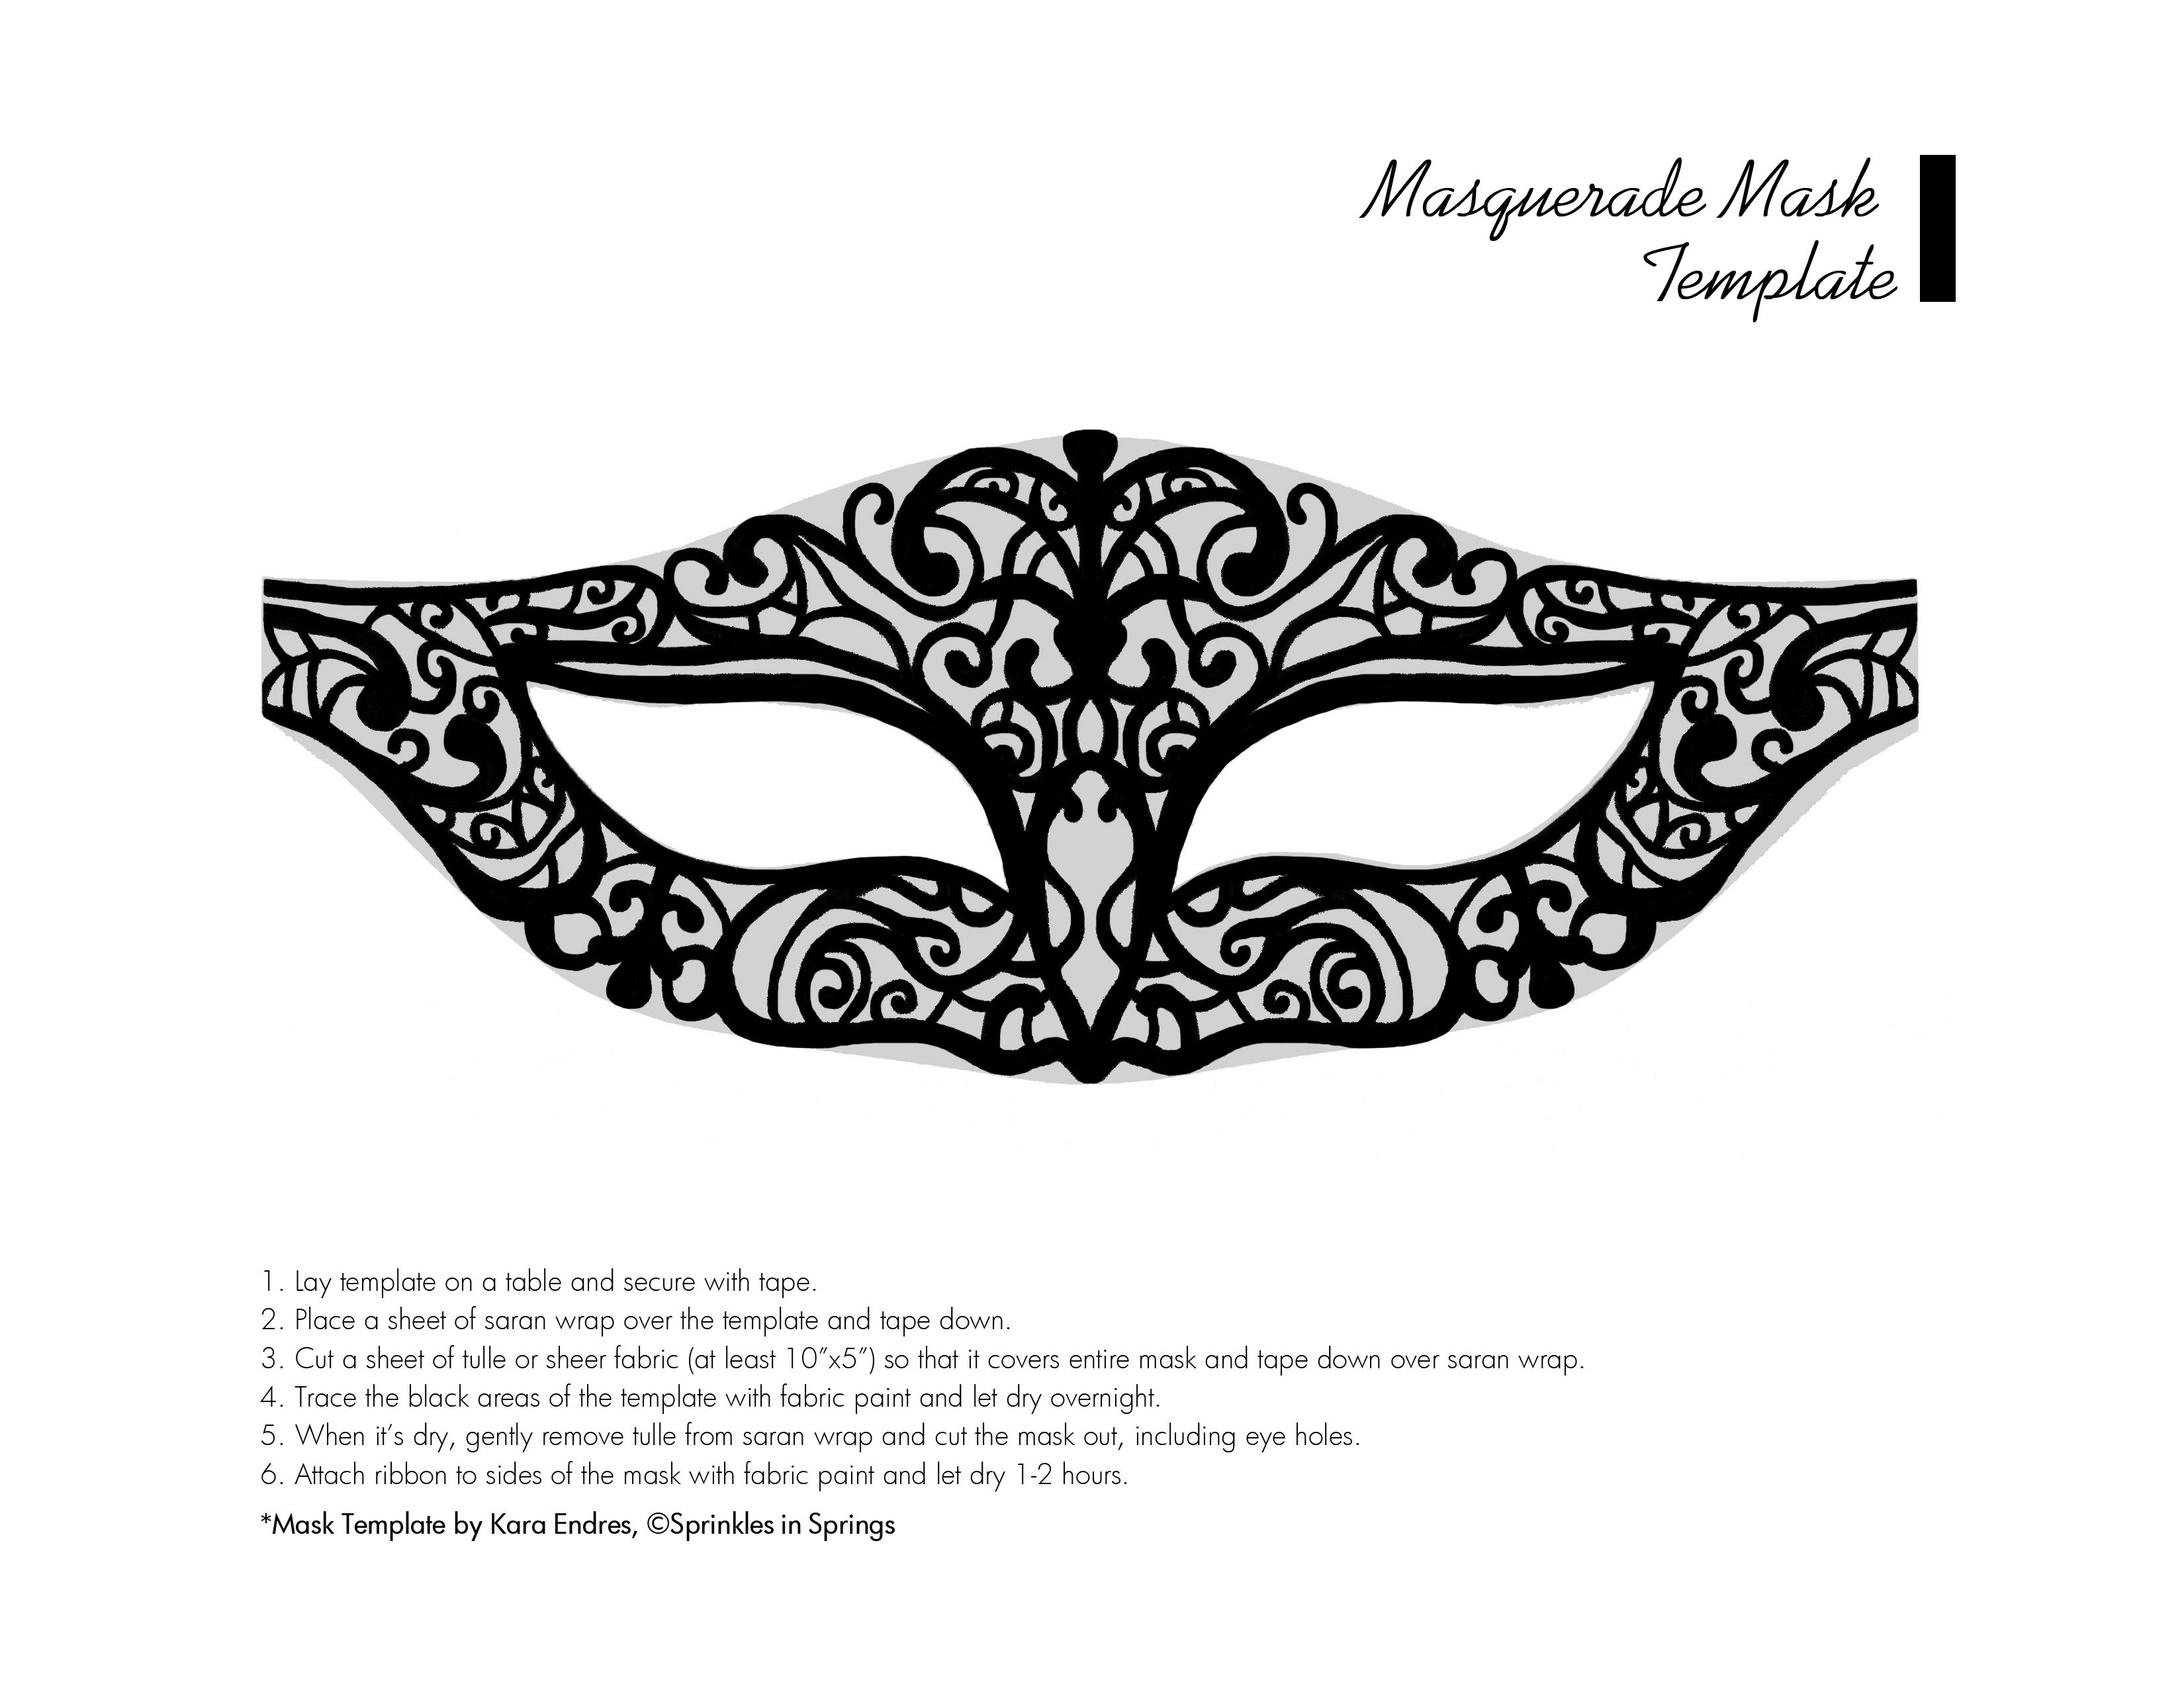 Chic Masquerade DIY Mask & Template Sprinkles in